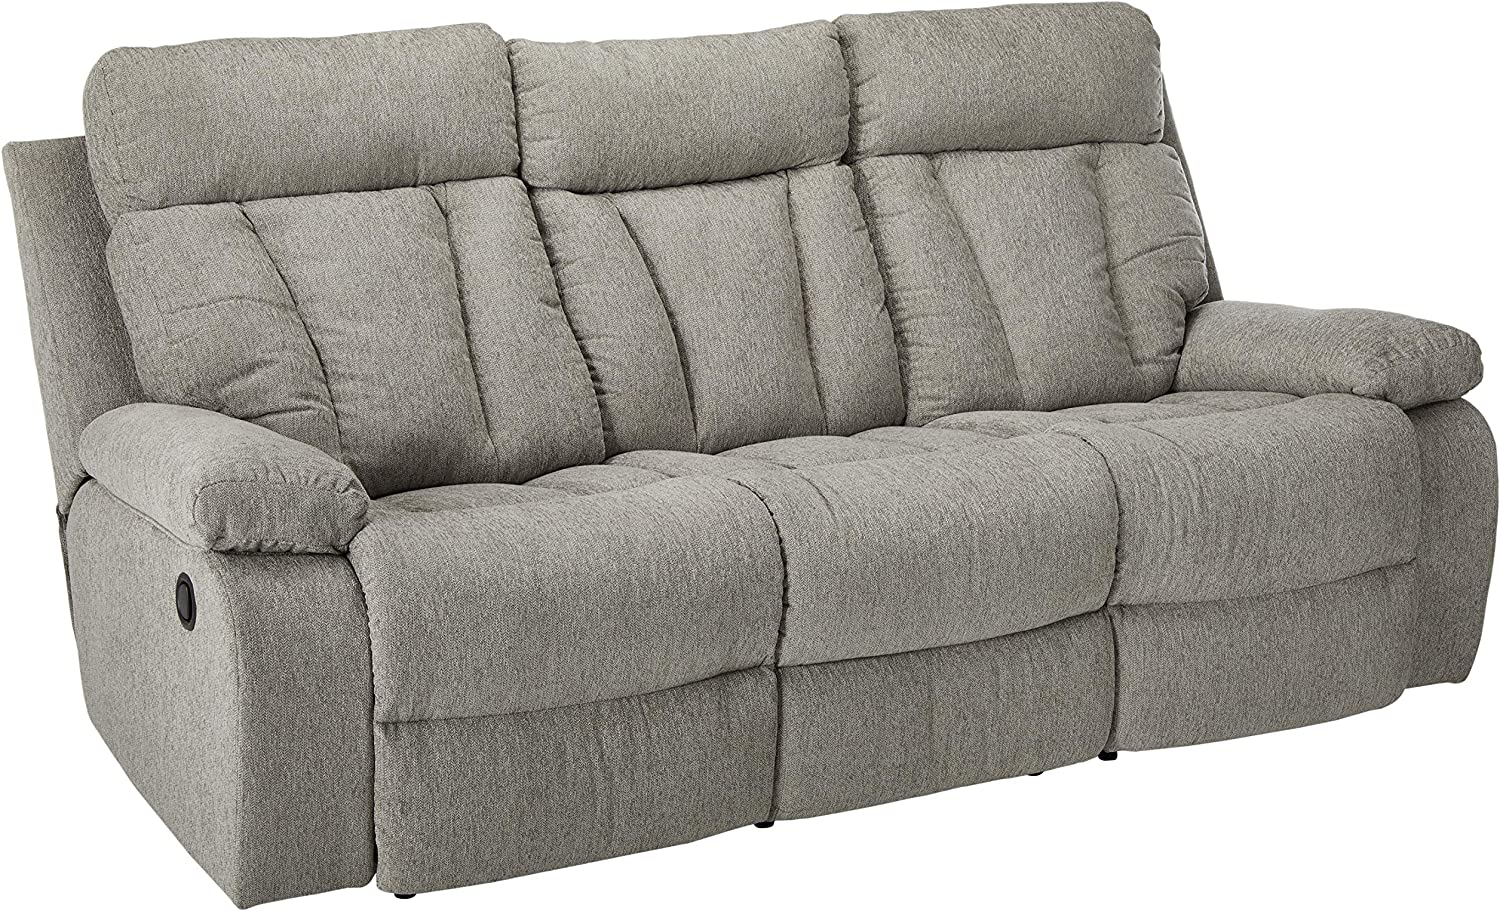 electric recliner couch